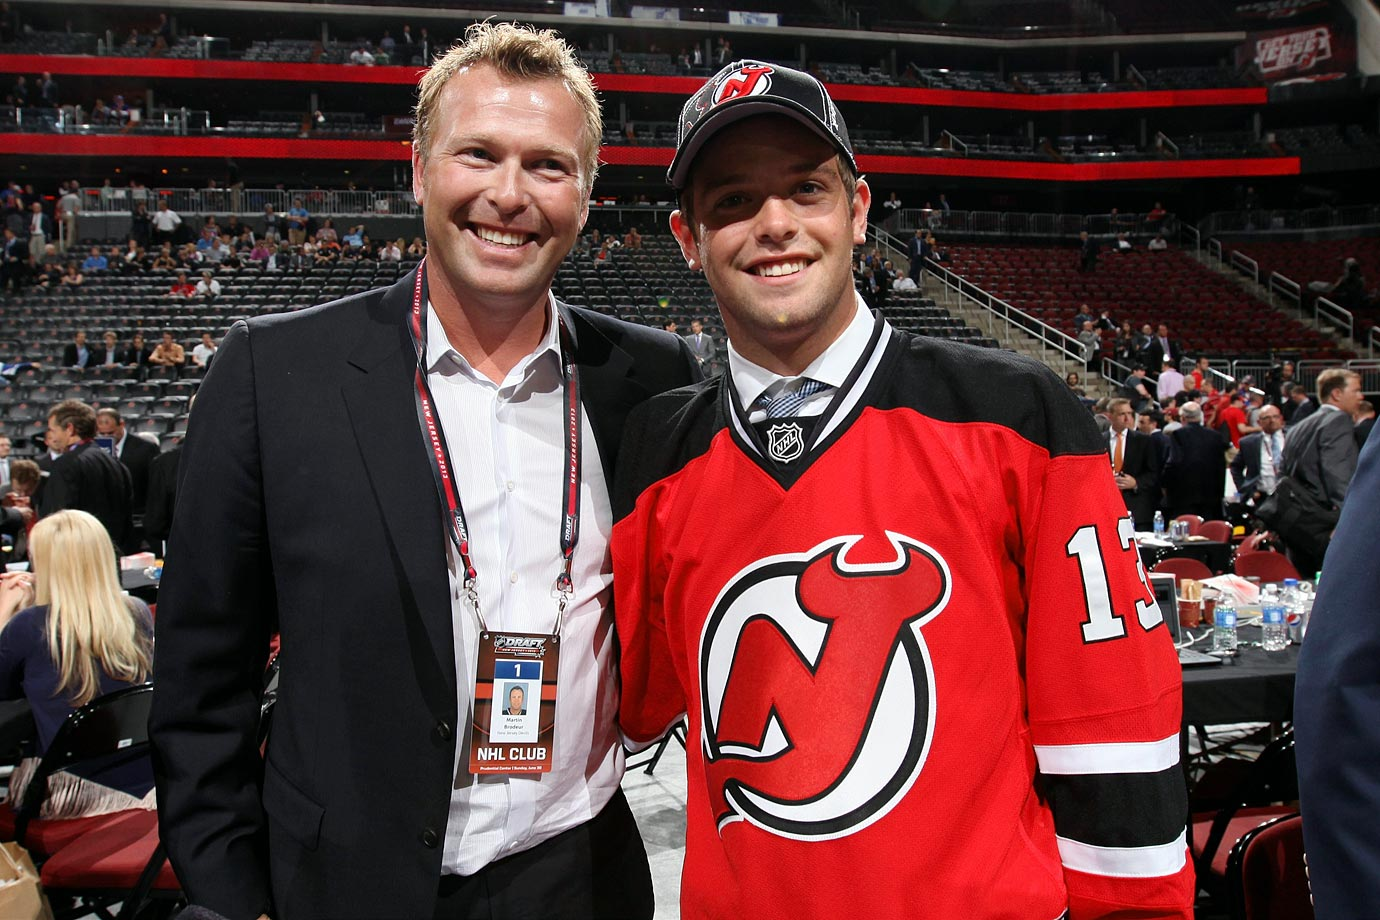 After the Devils acquired the 208th pick in the 2013 NHL Draft from the Kings, Brodeur was given the very special privilege of making the announcement that New Jersey had selected his son, Anthony, 18, a goalie out of Minnesota's Shattuck-St. Mary's prep school, in the seventh and final round.